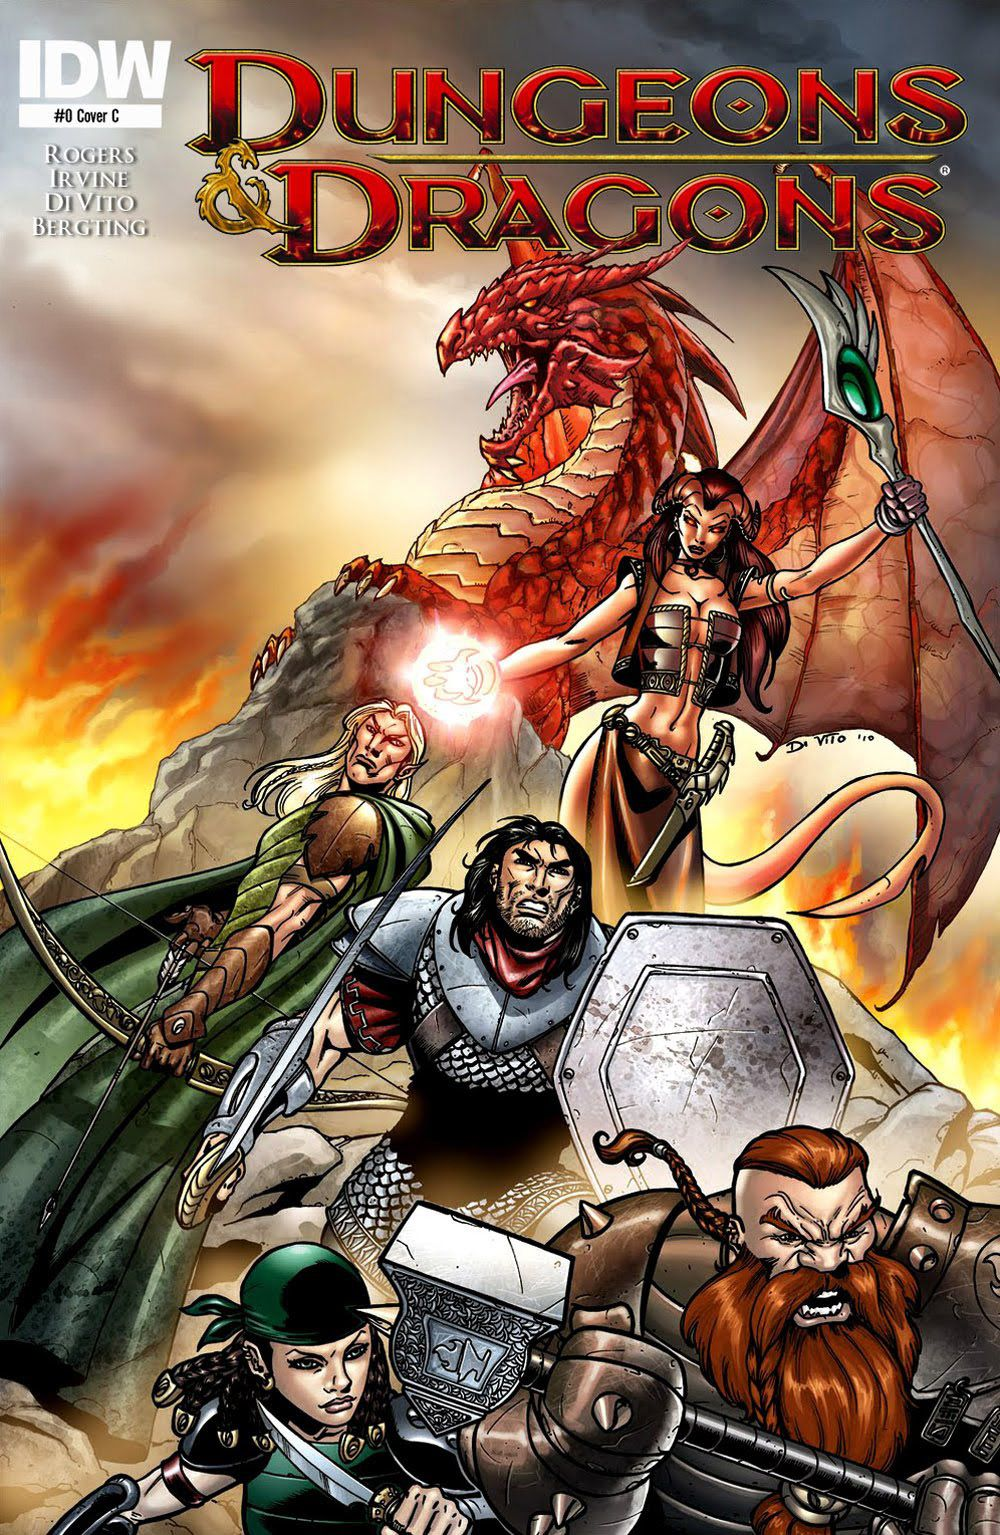 Dungeons+and+Dragons+00+001c.jpg (1000×1535)